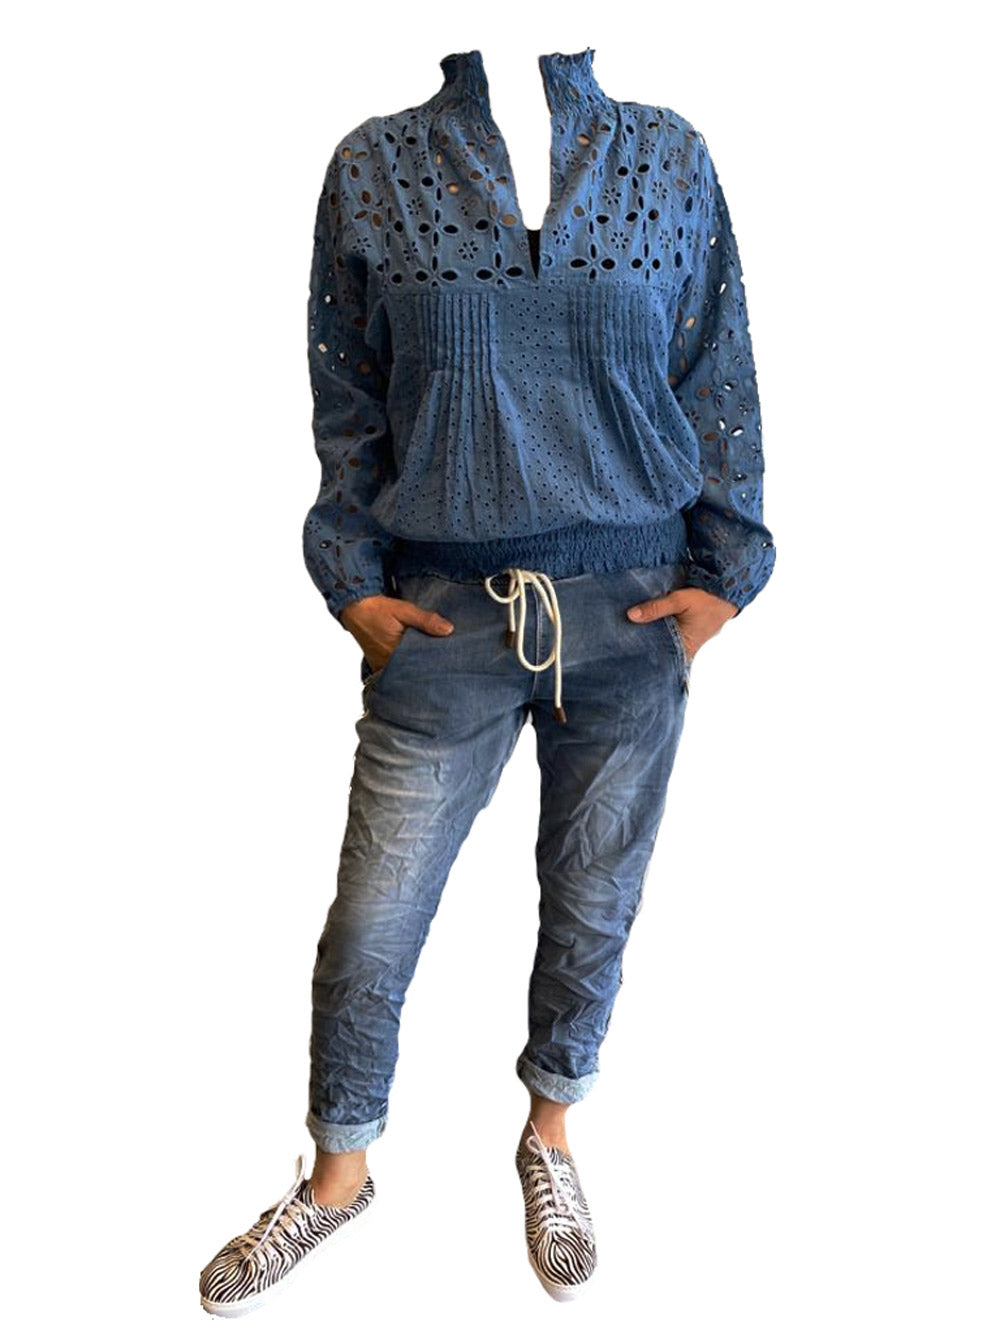 INZAGI Broderie Blouse - Blue